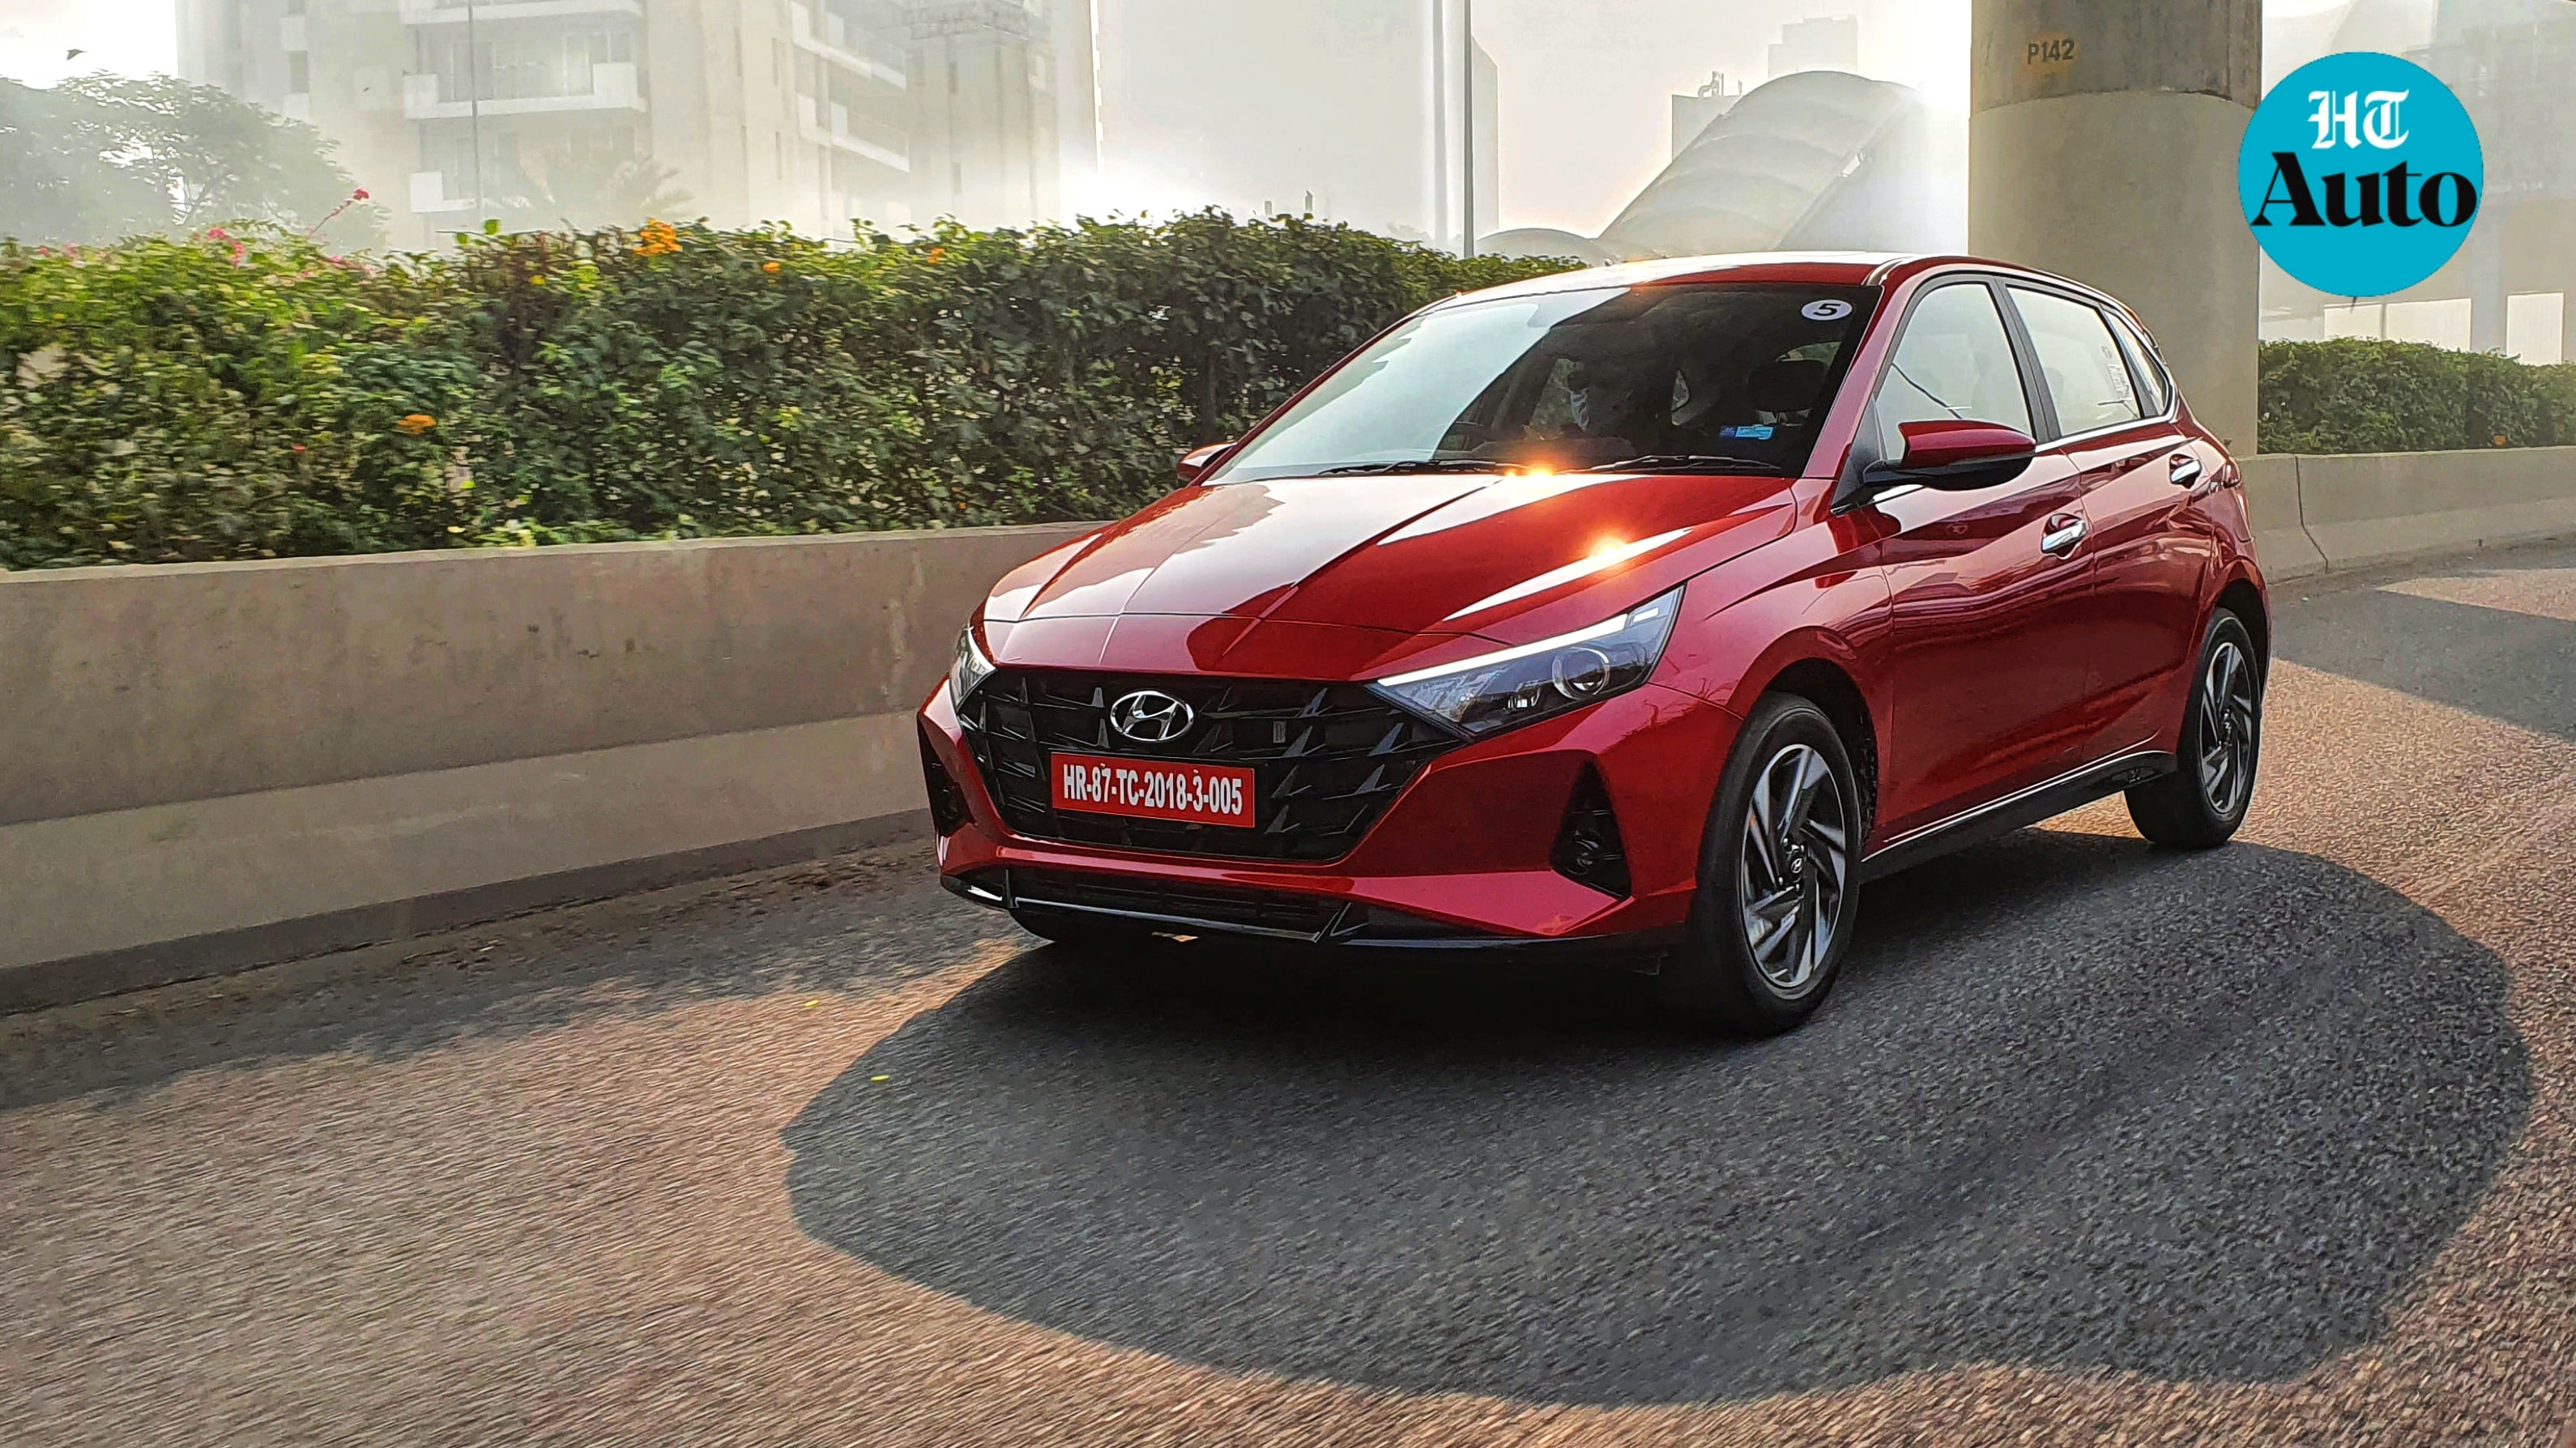 Hyundai claims that the i20 has a stronger body structure and higher crash worthiness than ever before. Other safety highlights include six airbags, Vehicle Stability Management and Electronic Stability Control, Hill Assist Control and rear parking camera. (HT Photo/Sabyasachi Dasgupta)